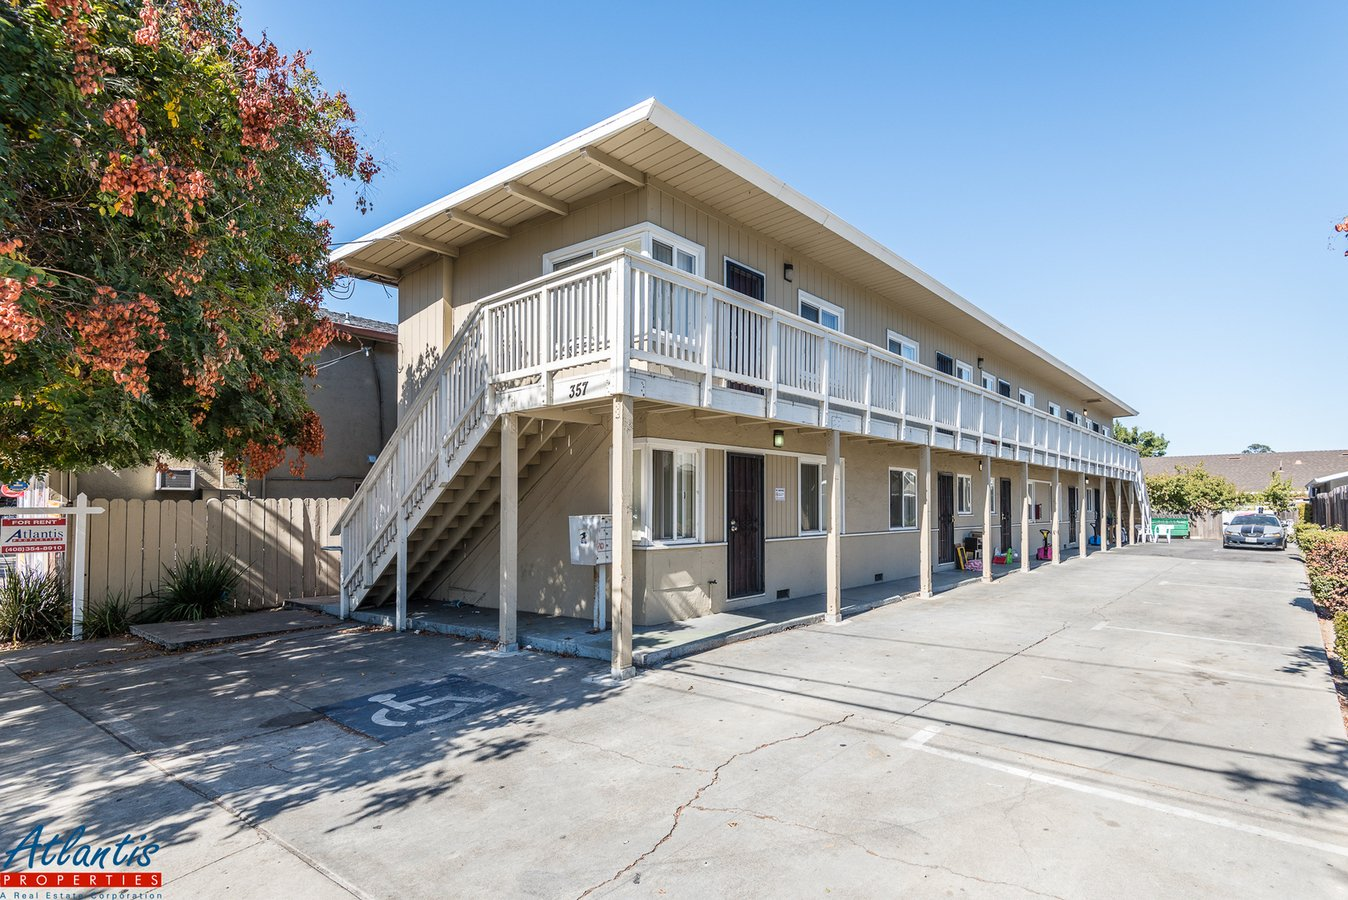 1 Bedroom 1 Bathroom Apartment for rent at 357 Willow St in San Jose, CA